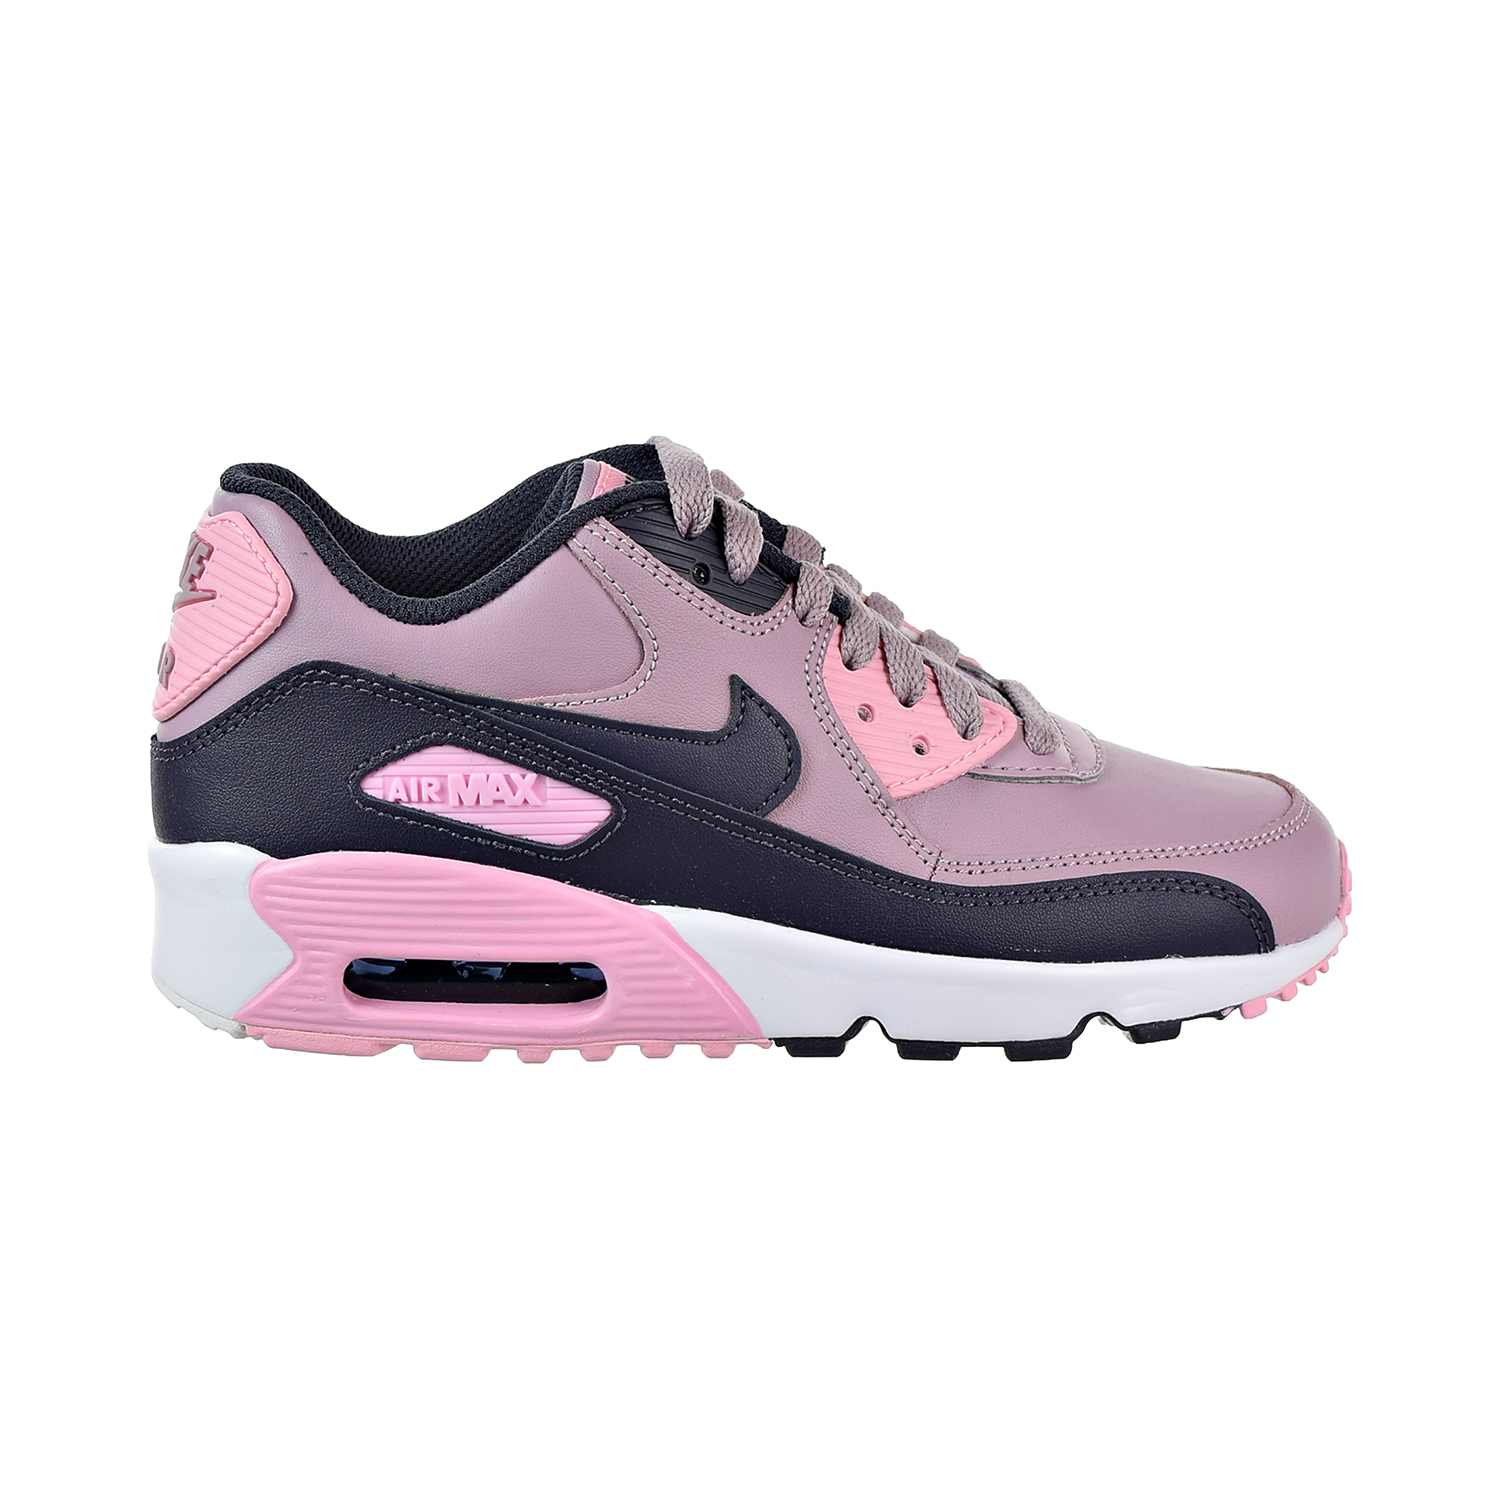 Details about Nike Air Max 90 Leather Big Kids  Shoes Elemental  Rose Gridiron Pink 833376-602 366ca7b6f2d86